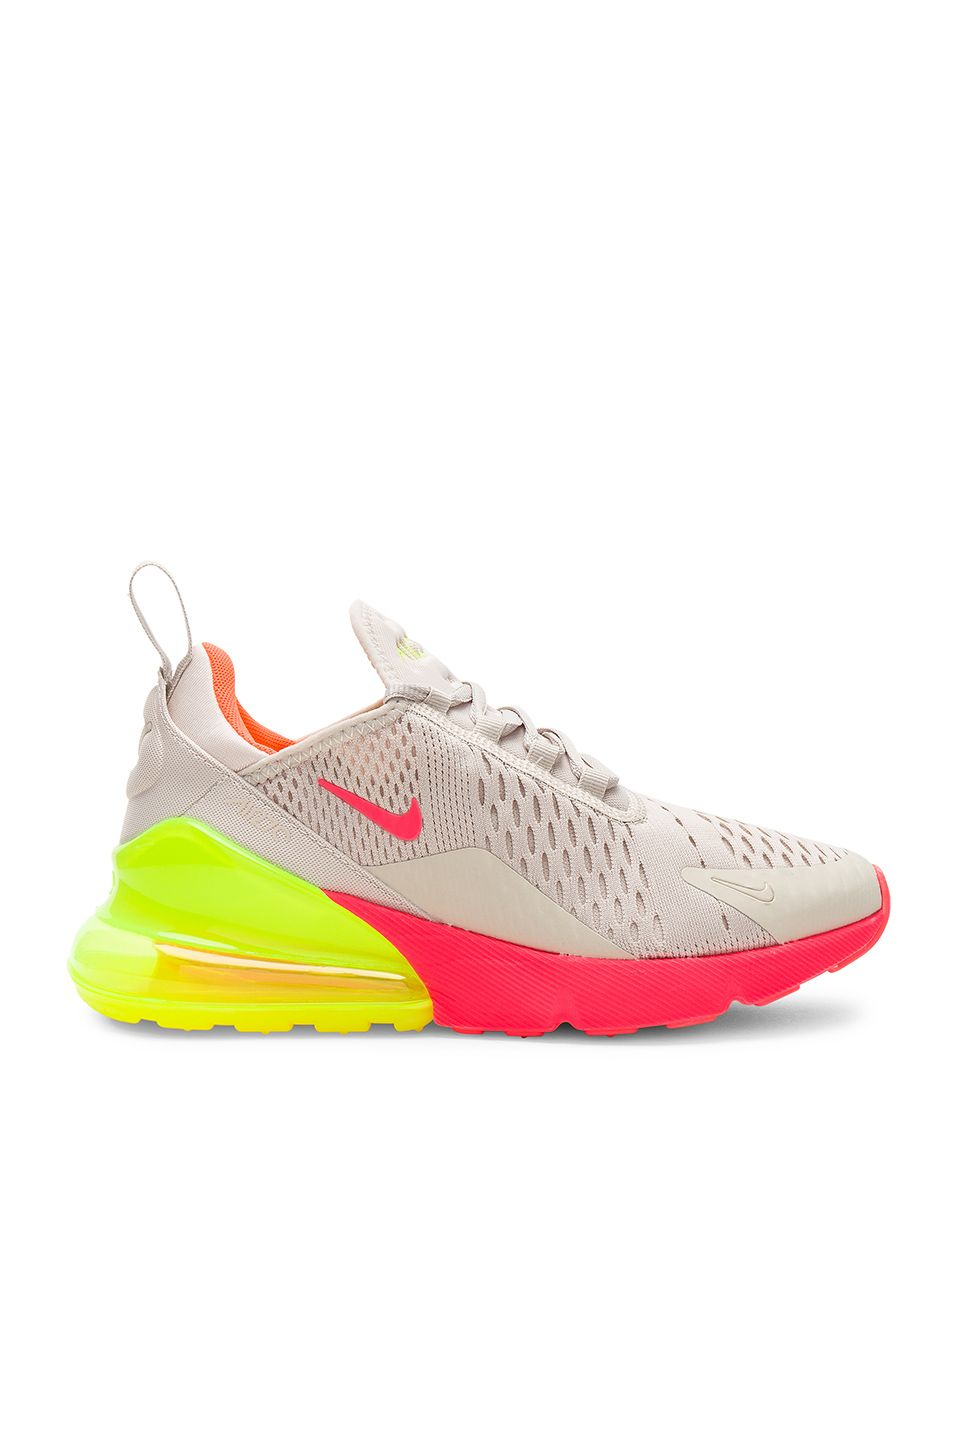 separation shoes 101d0 7fd50 Nike Air Max 270 Sneaker in Desert Sand, Hot Punch, Volt   Tot